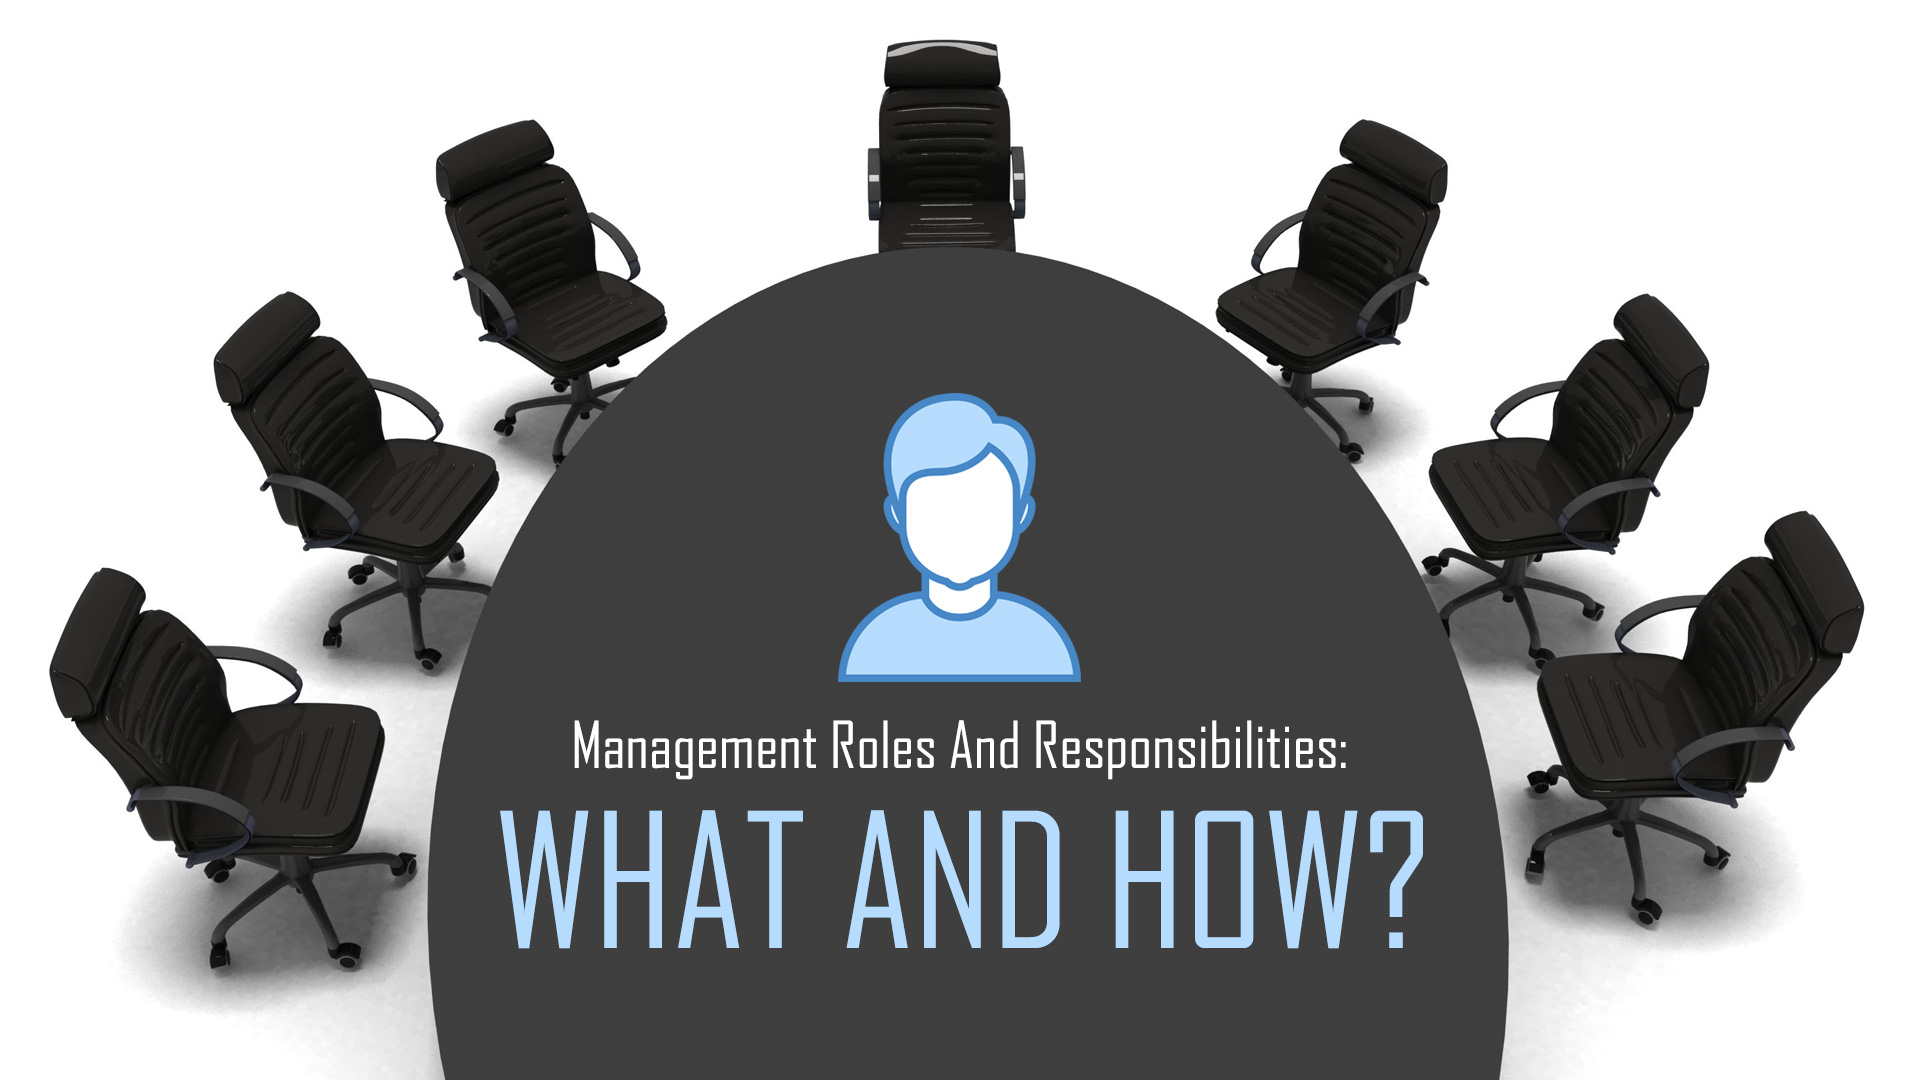 roles and responsibilities Learn about roles and responsibilities of corporate boards of directors in this topic from the free management library  major responsibilities of board of directors.